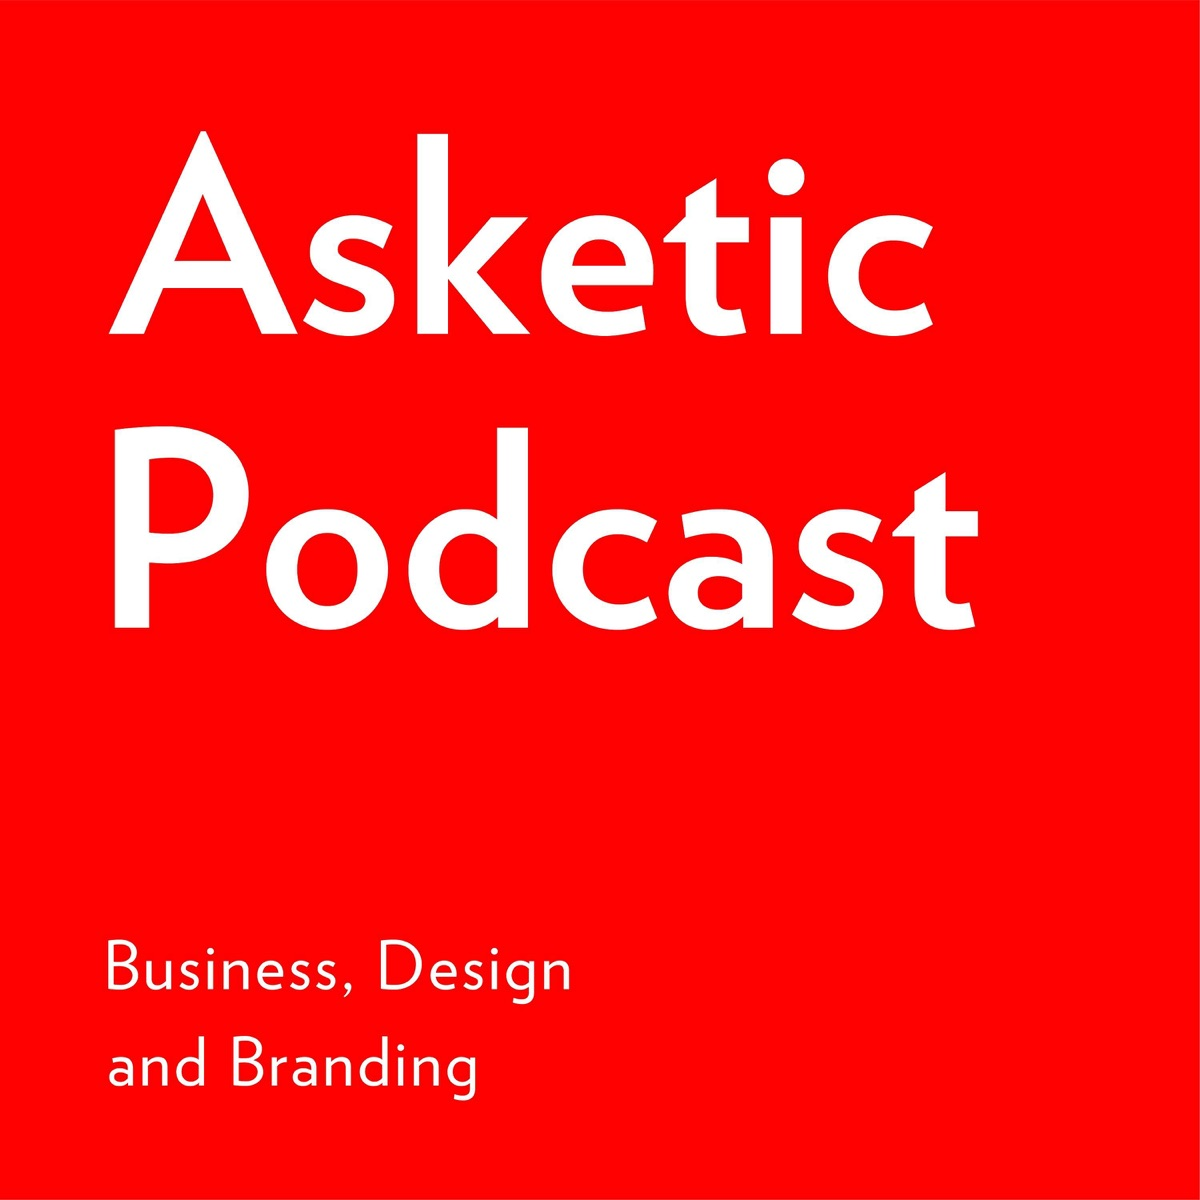 Asketic Podcast